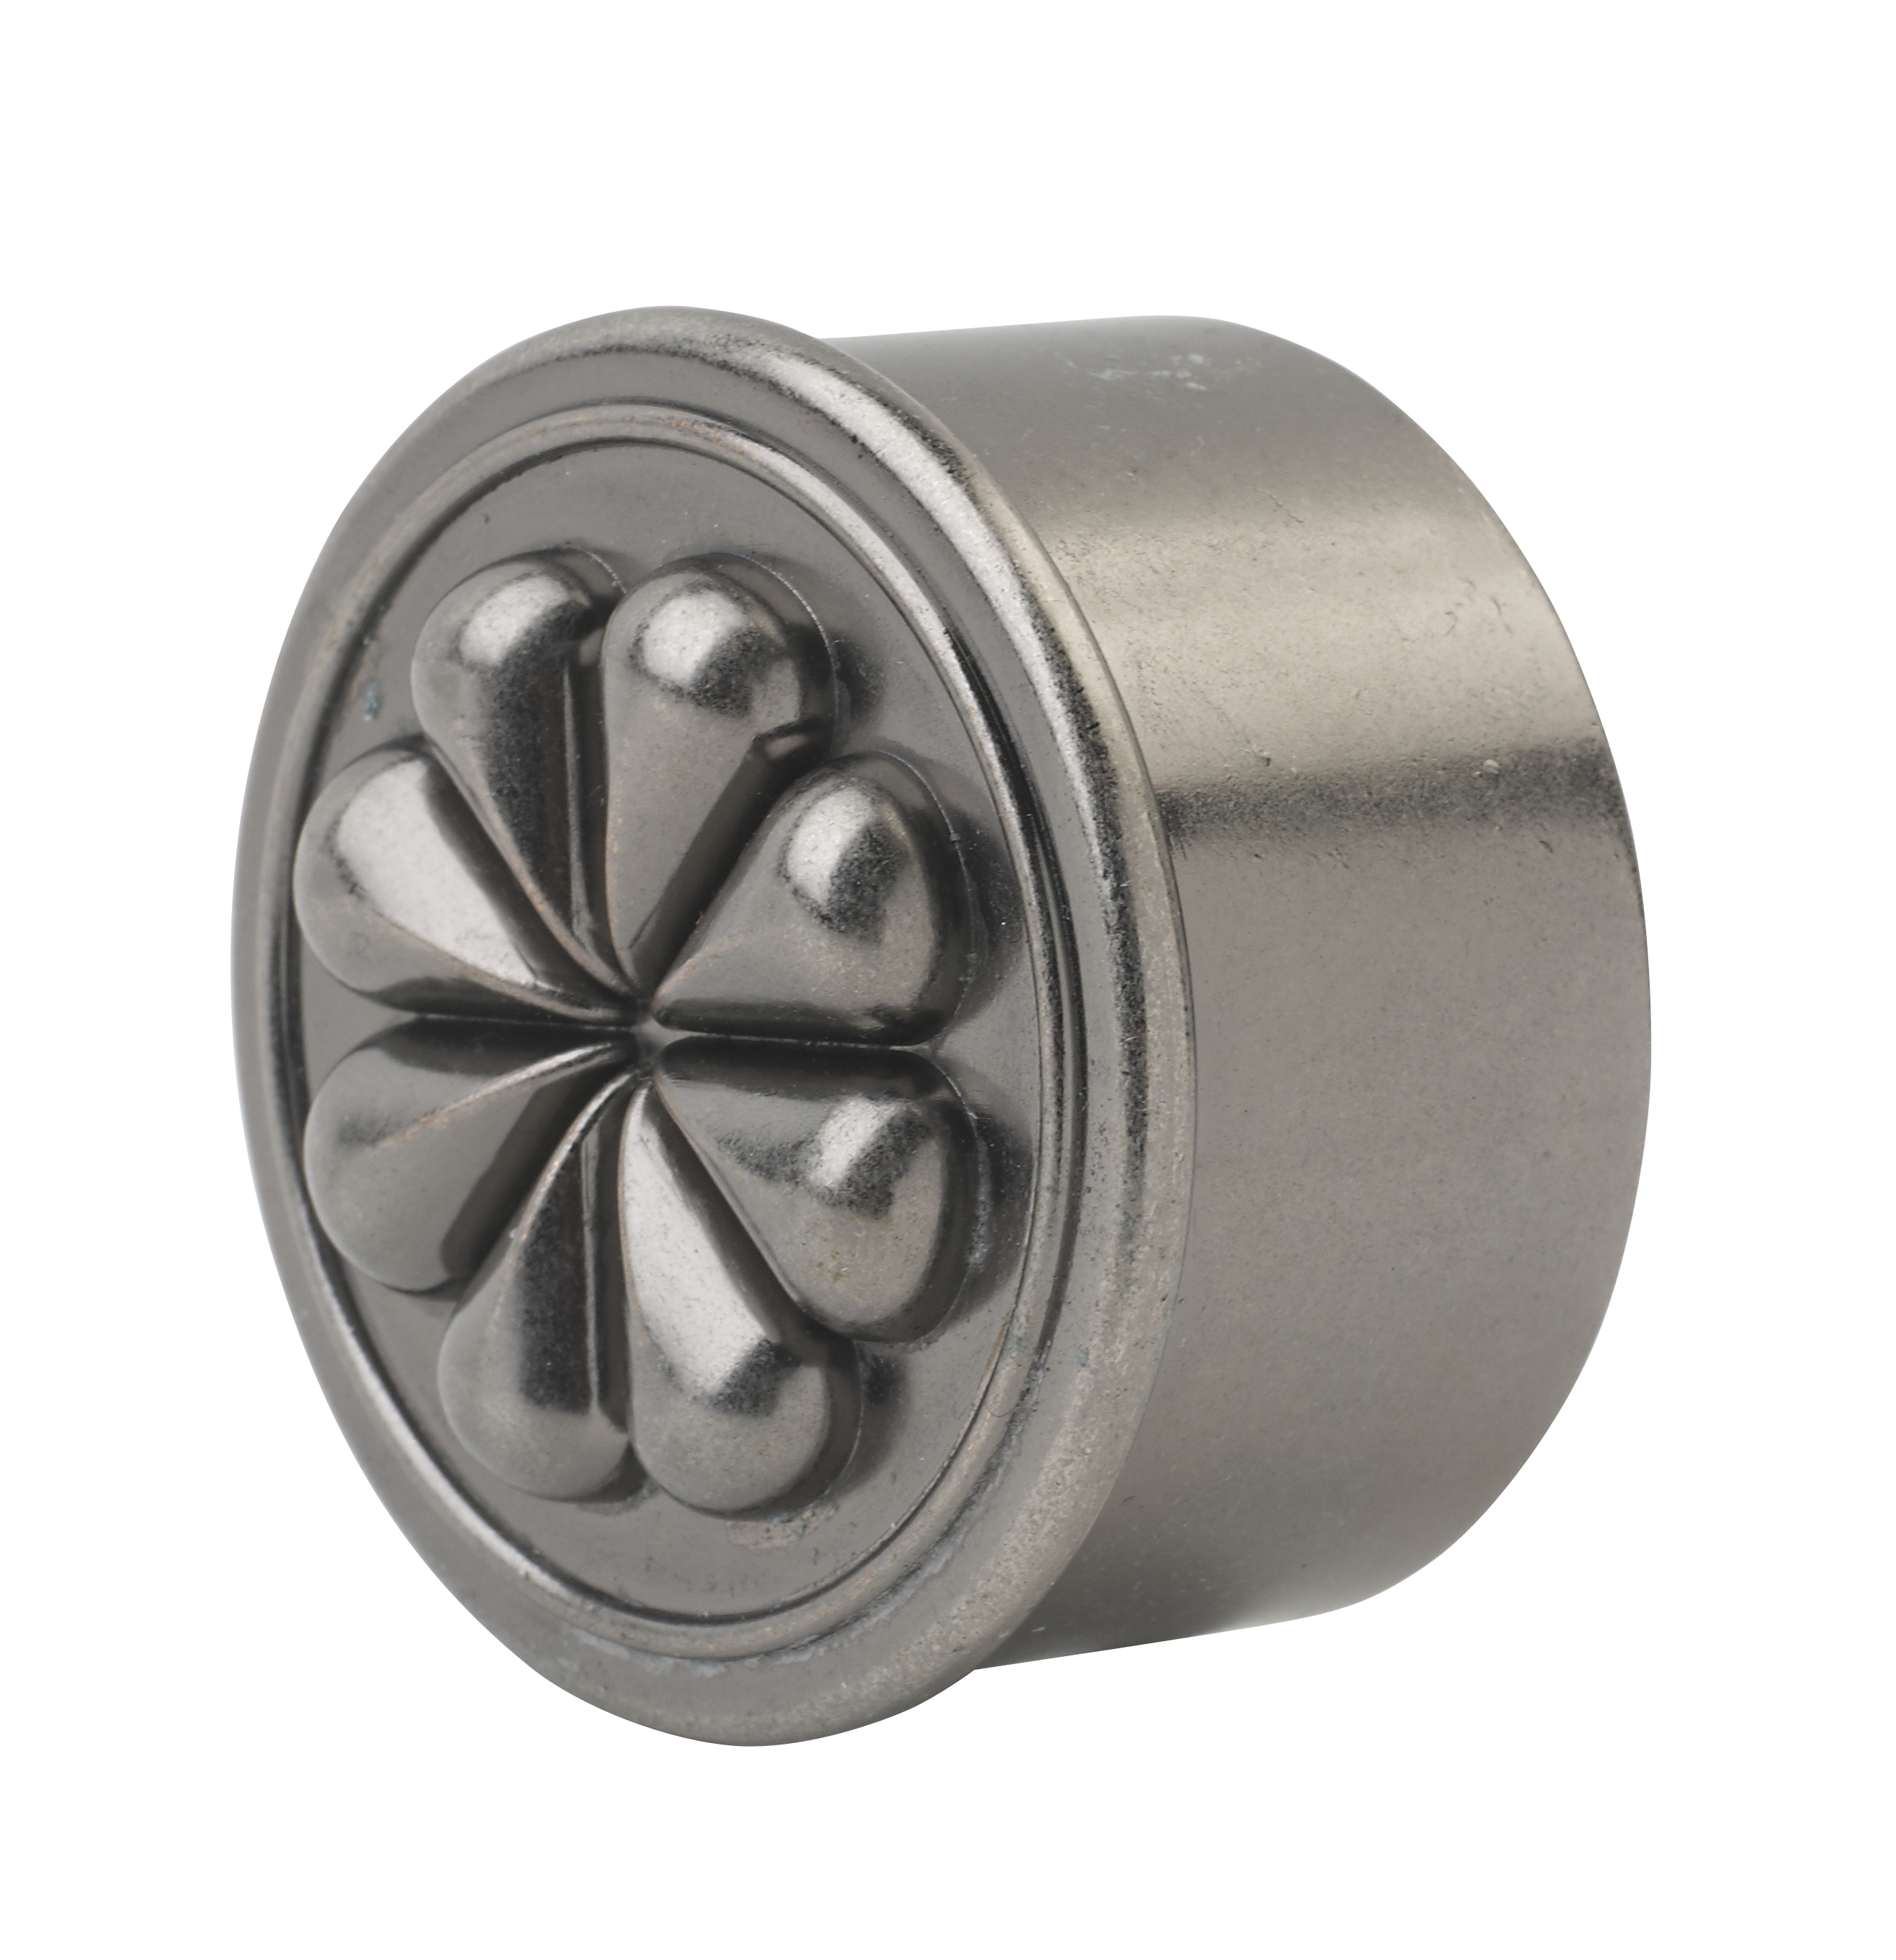 2 Petal Pewter Effect End Cap